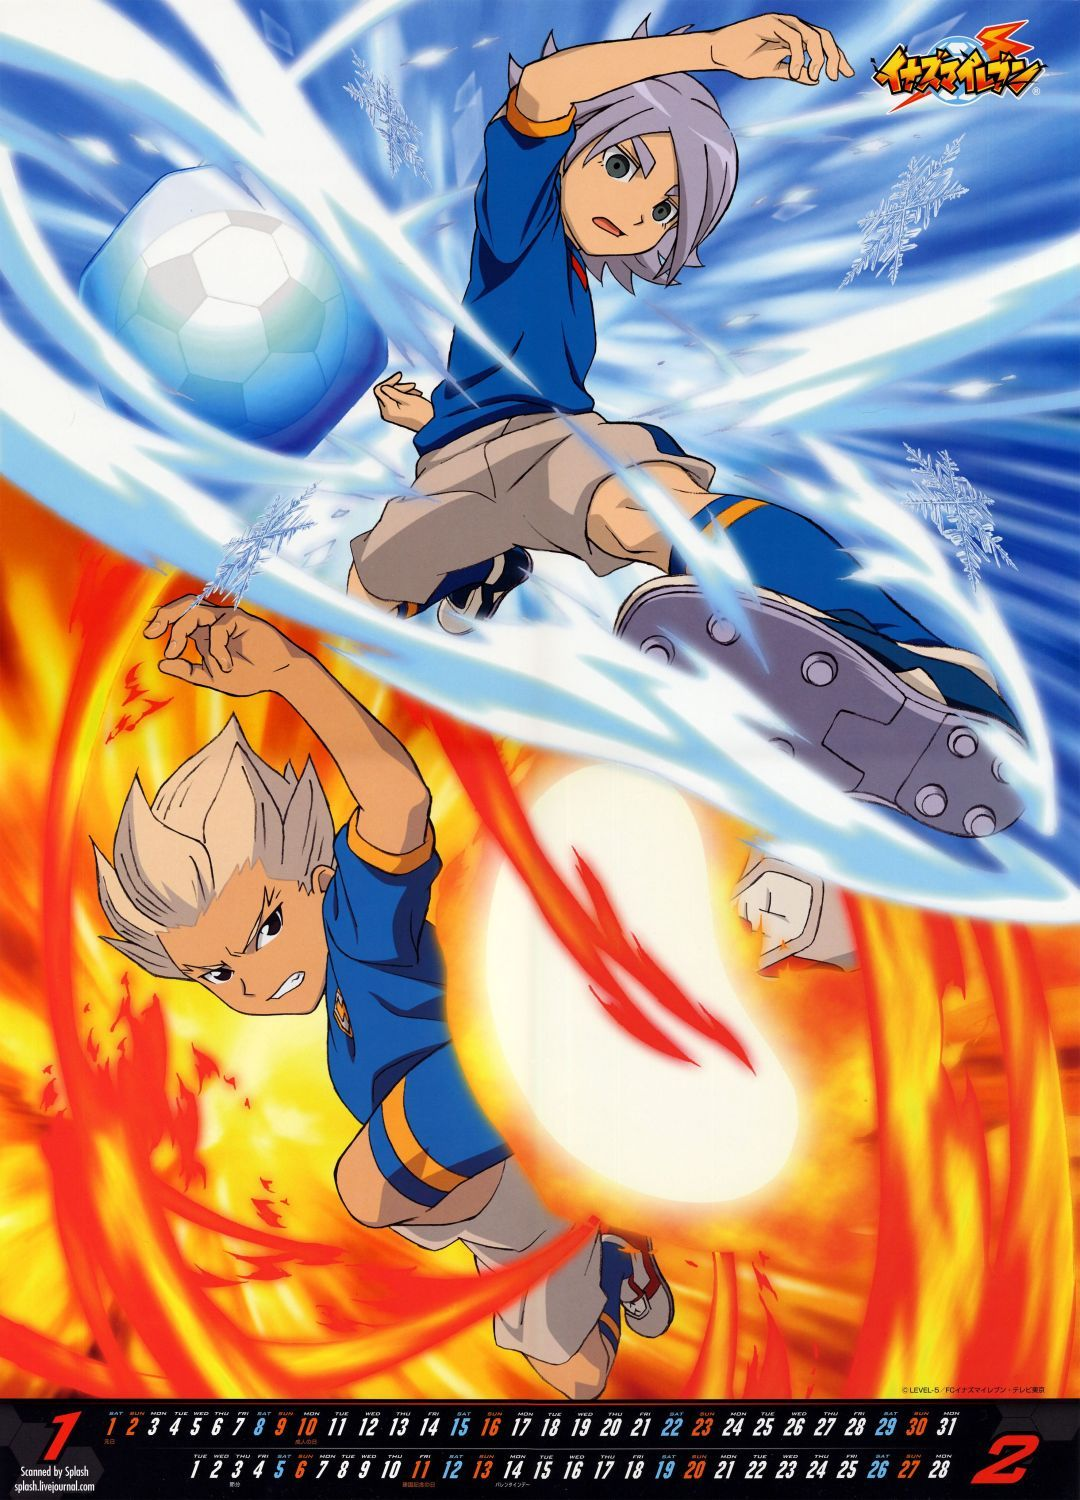 Inazuma Eleven Android Iphone Desktop Hd Backgrounds Wallpapers 1080p 4k 112295 Hdwallpapers Androidw Anime Anime Images Inazuma Eleven Wallpaper 11 anime wallpaper android hd